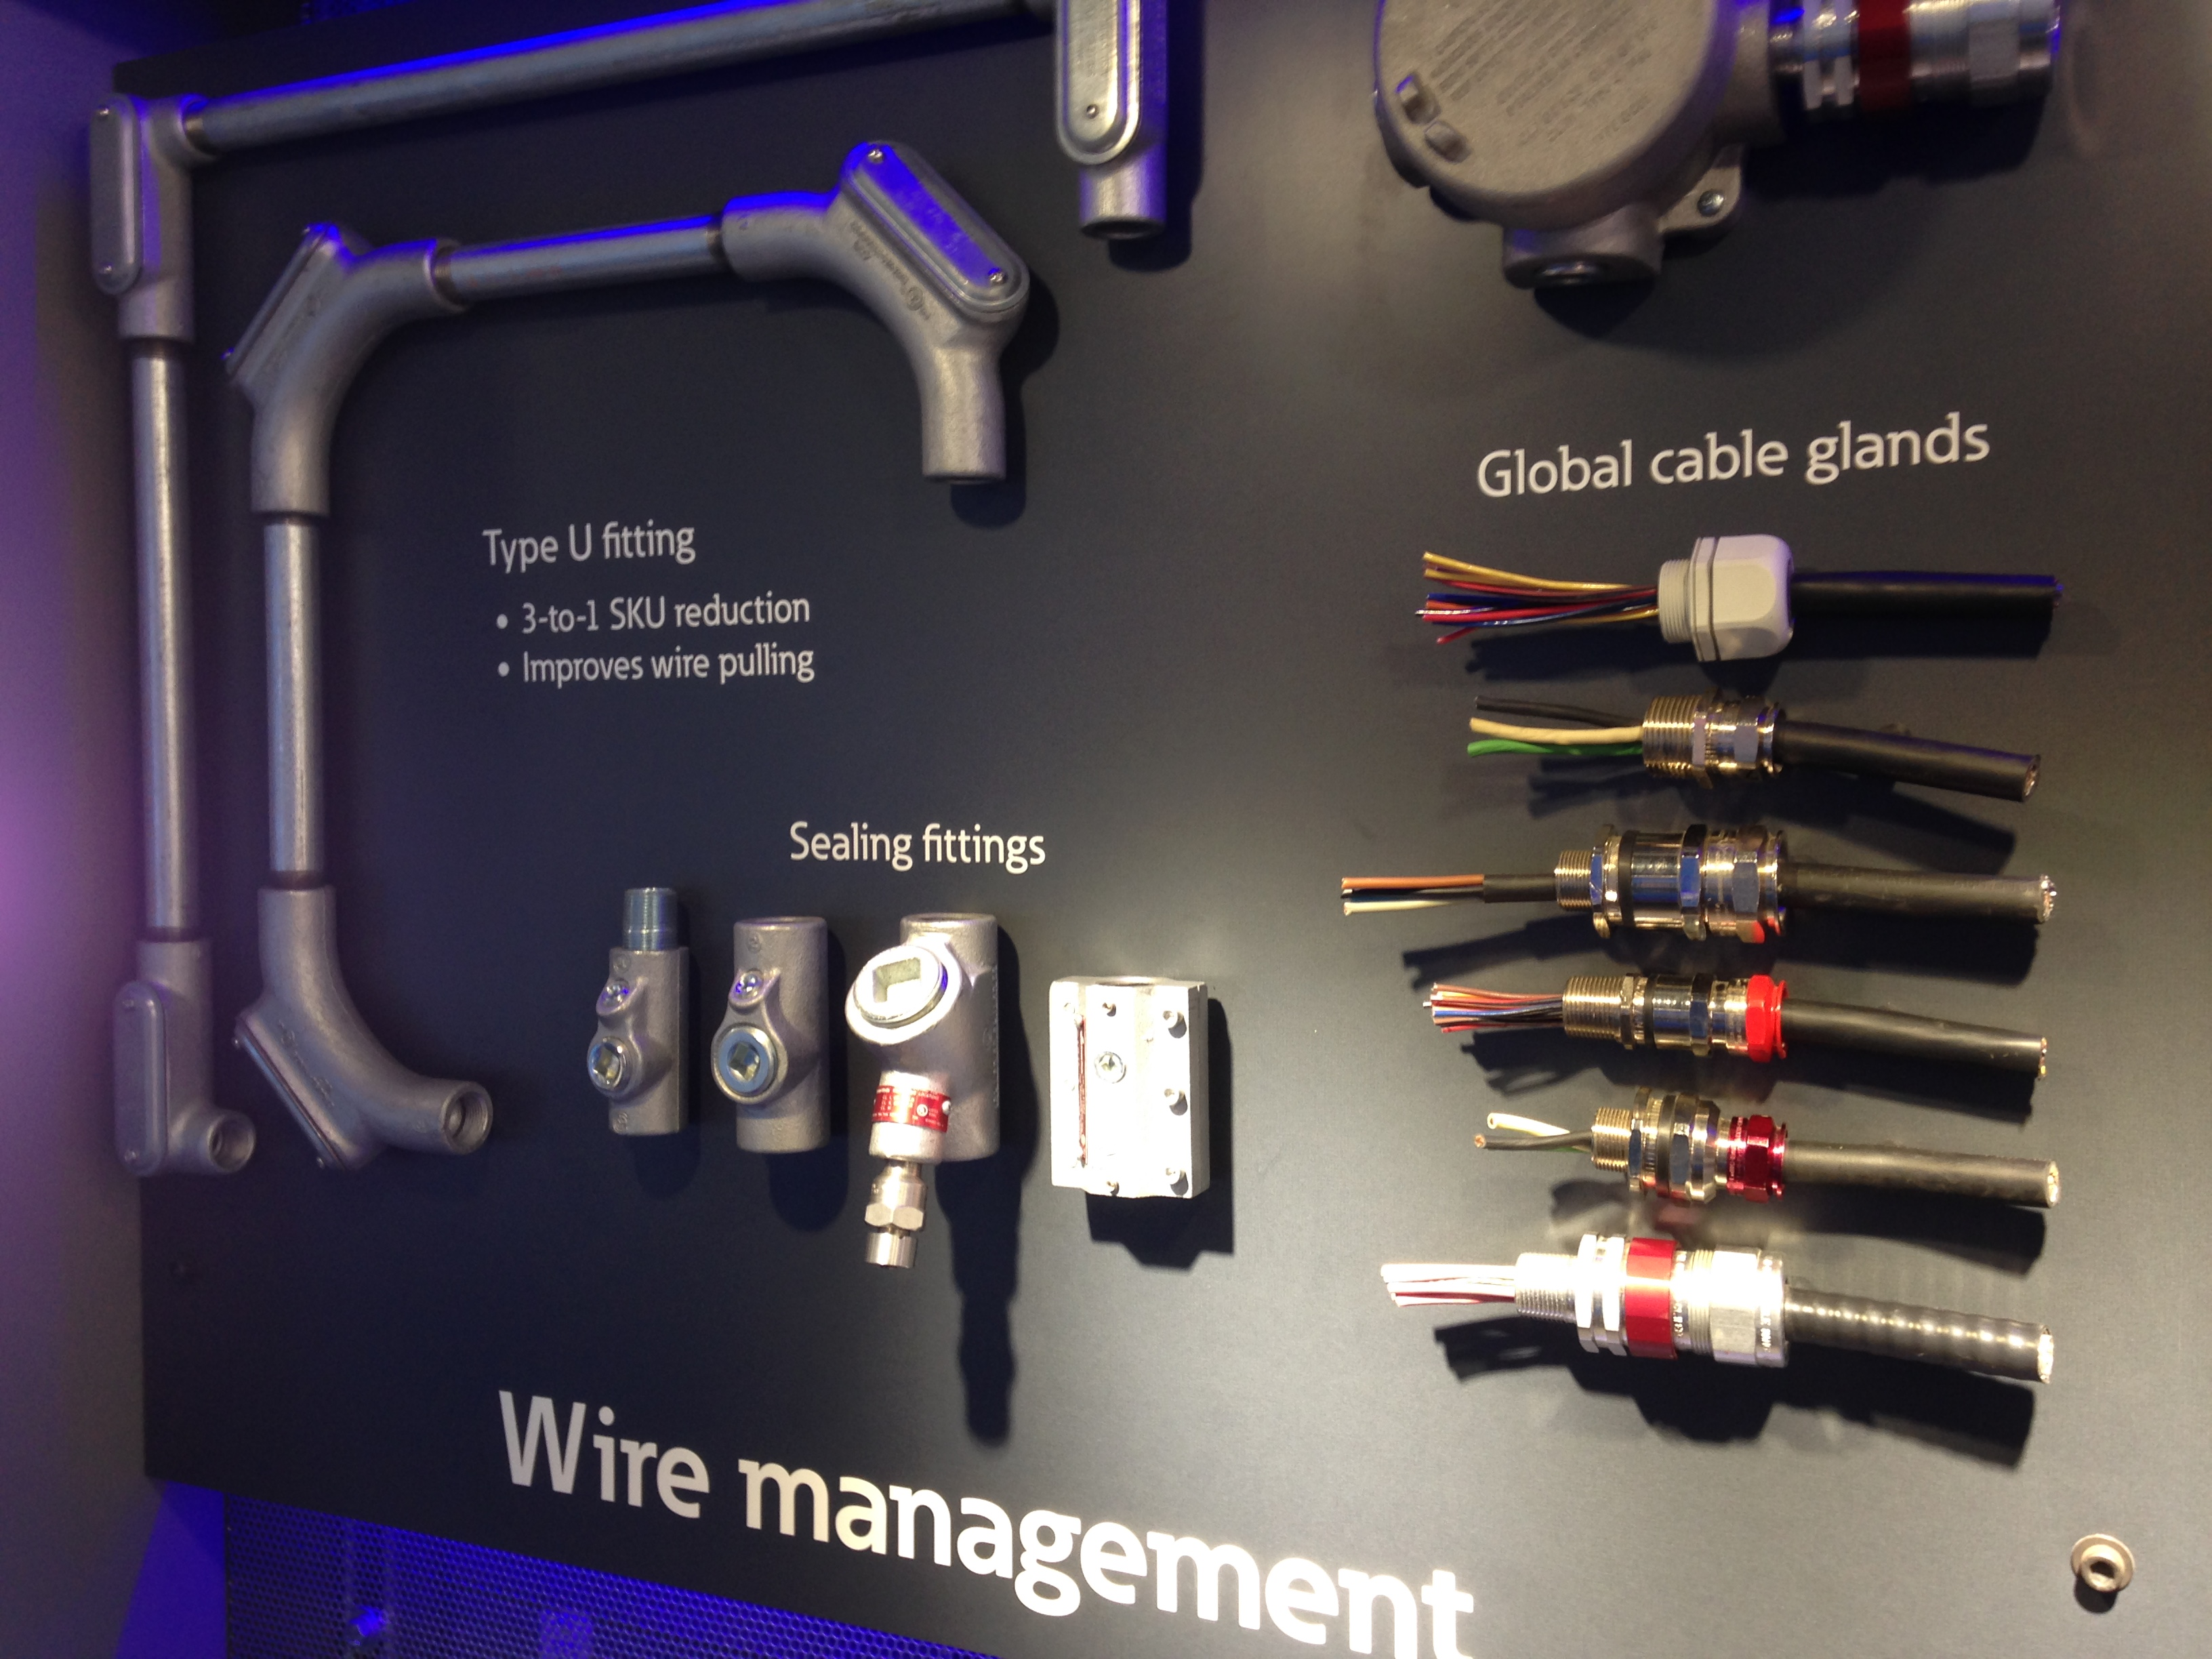 Wire management training materials